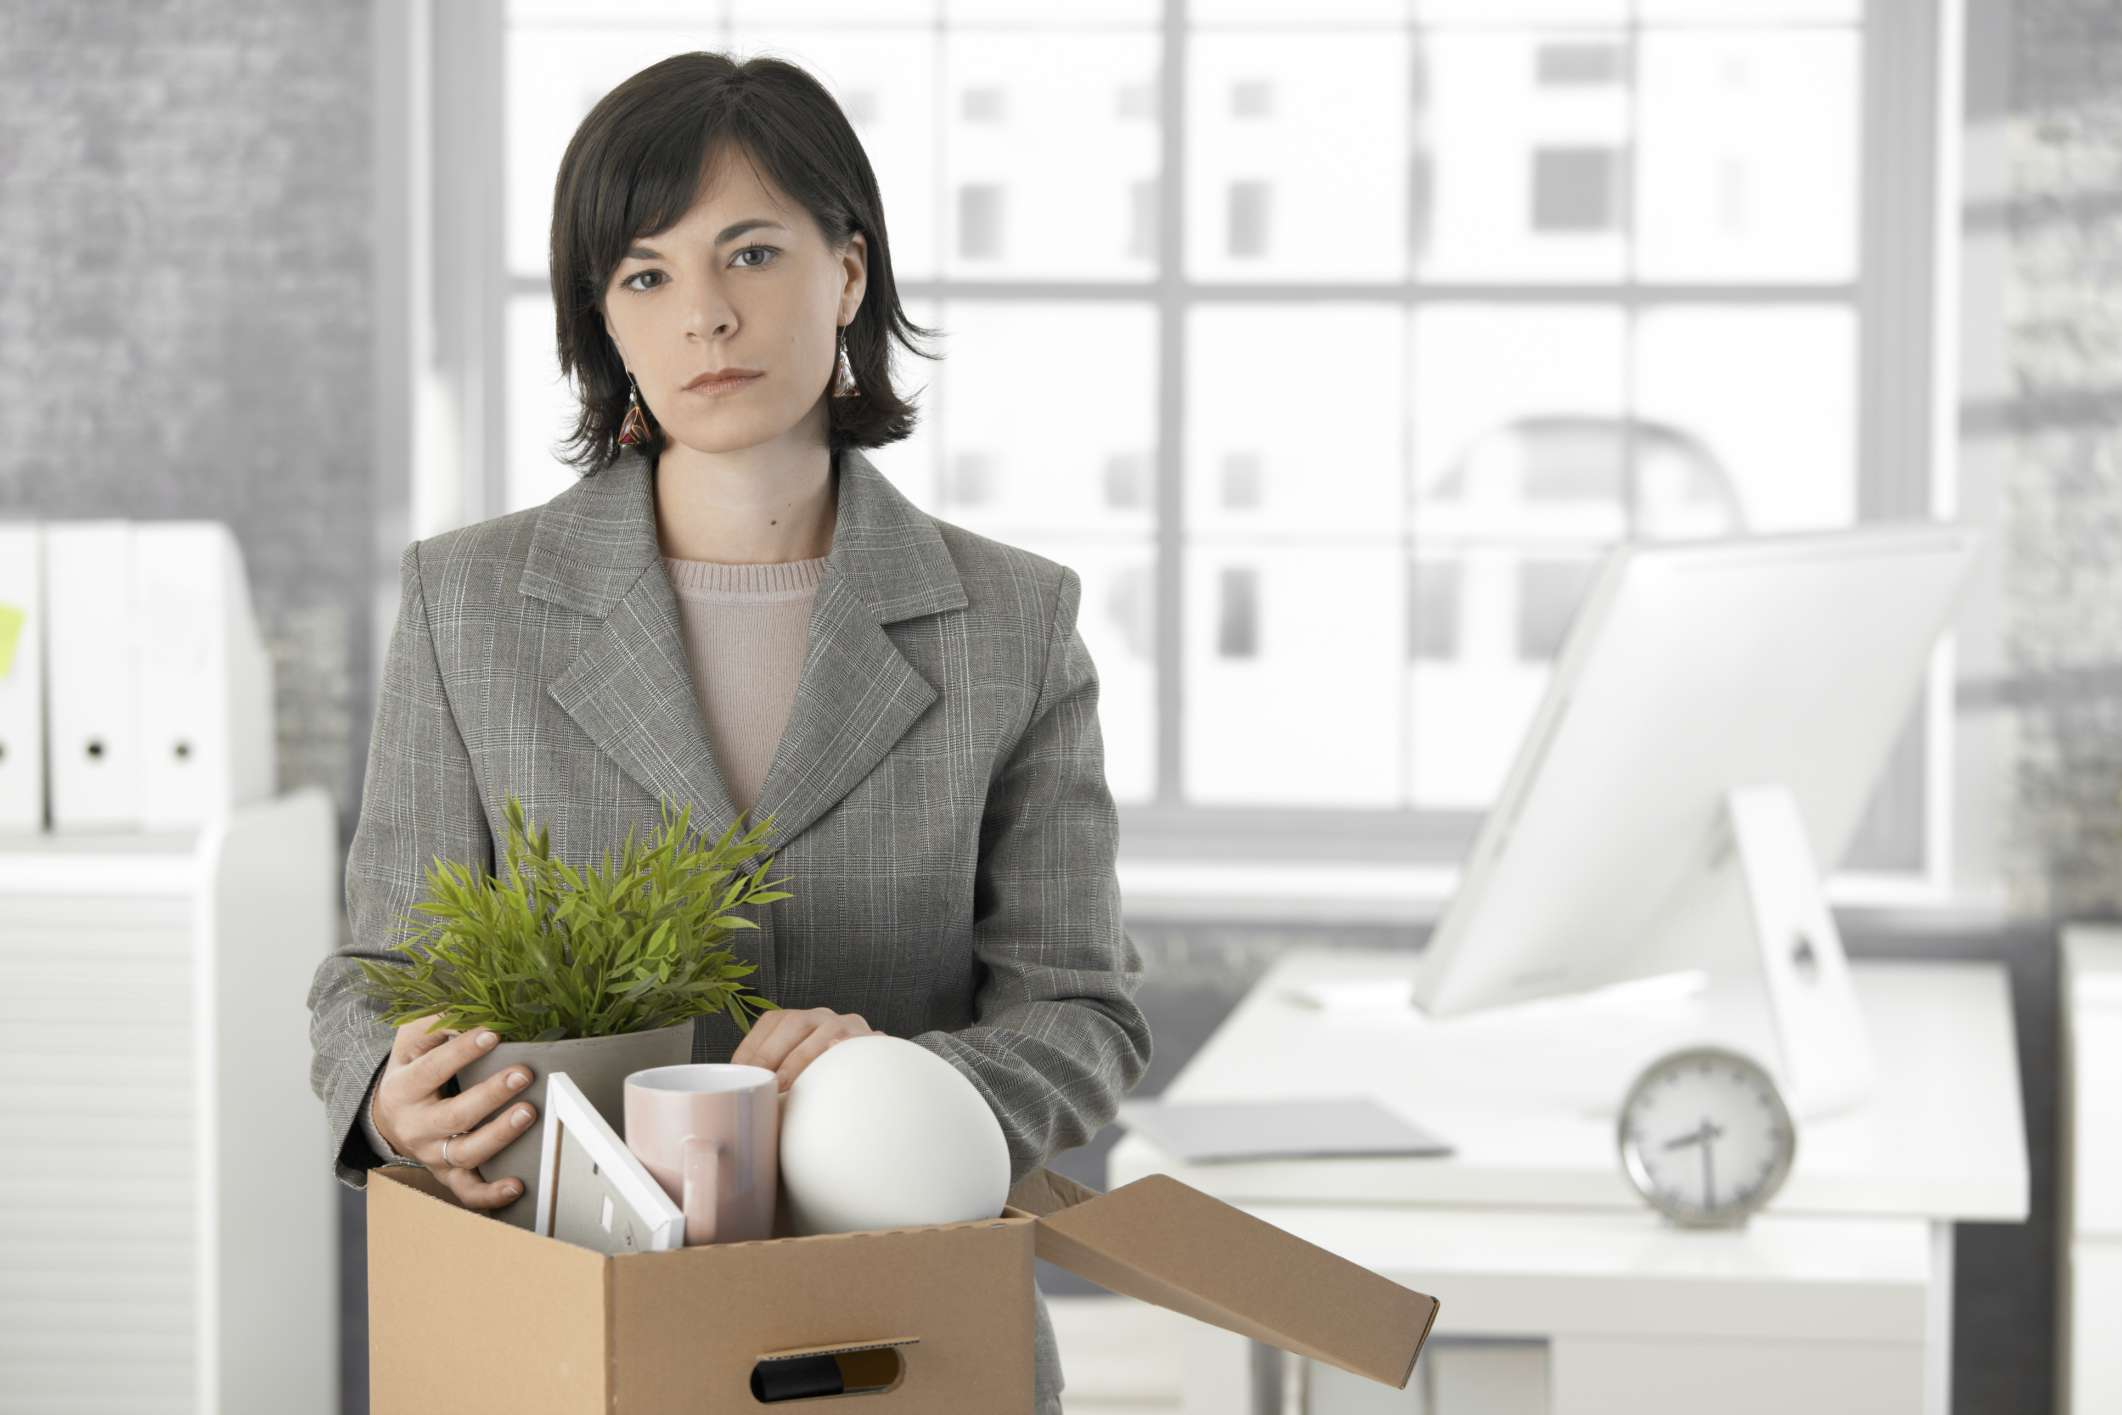 Woman packing up her belongings in an office after being fired